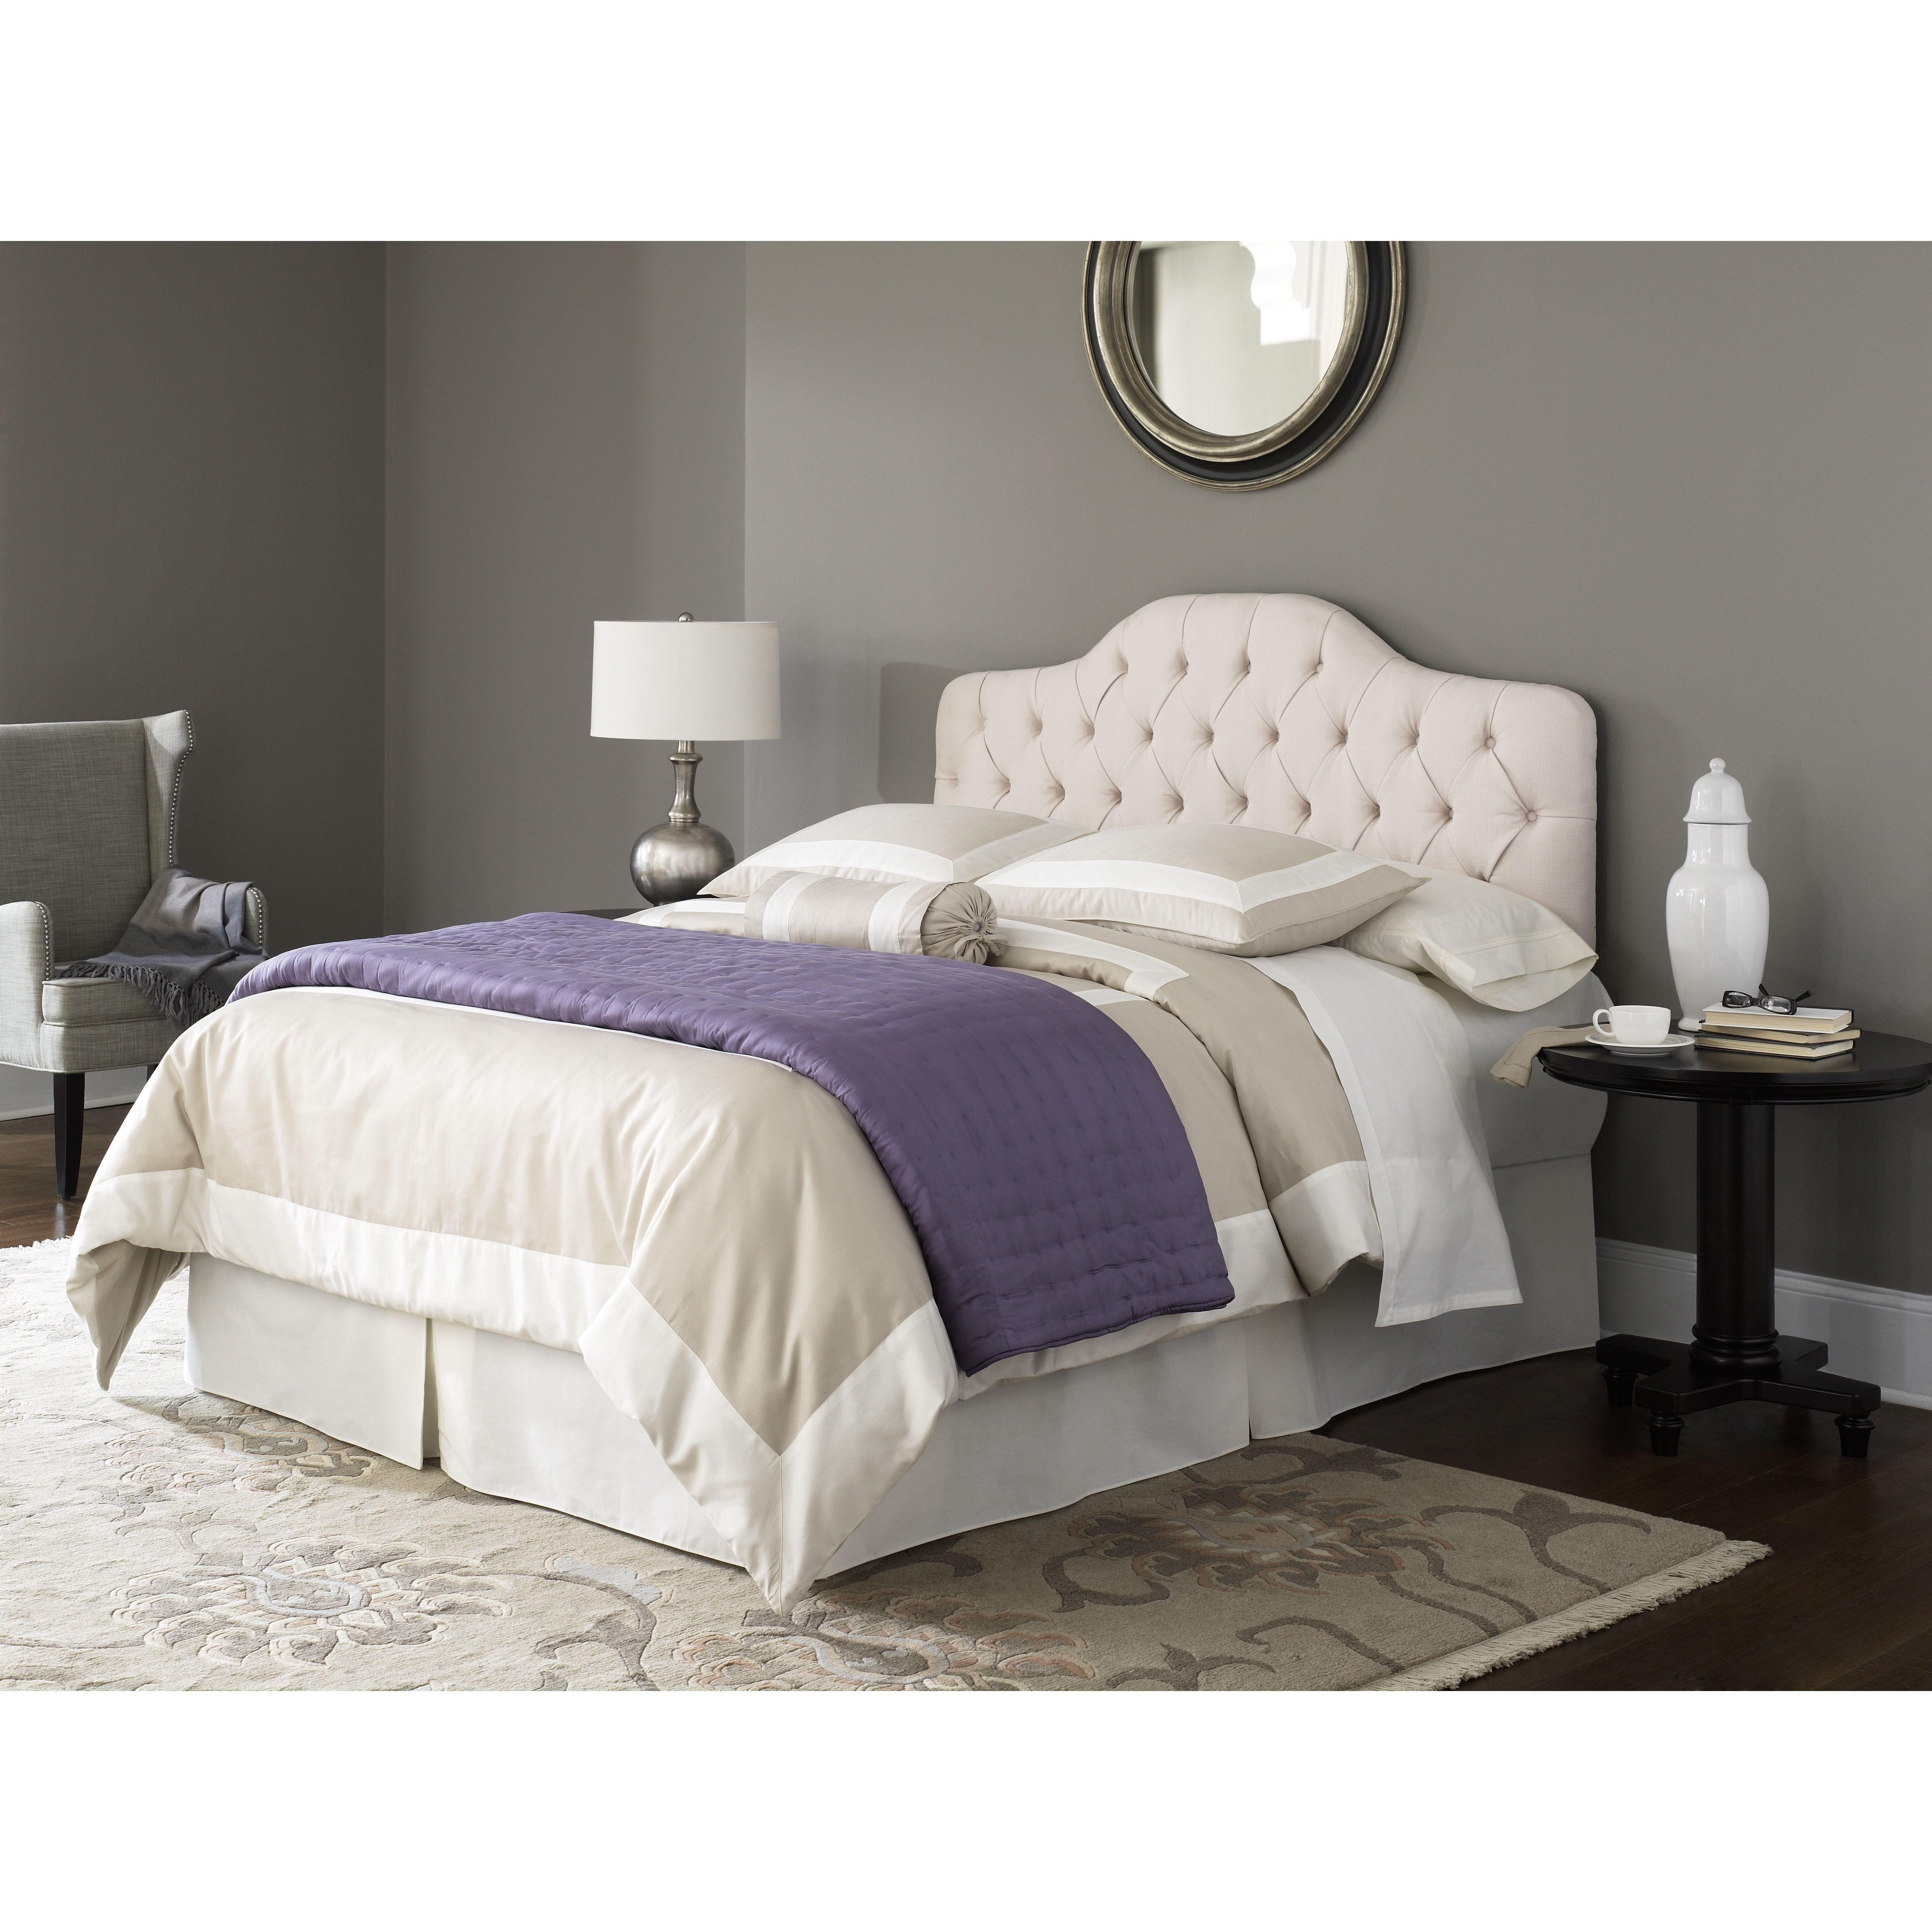 Queen bed frame mattress box spring and bedding for sale pre owned ...